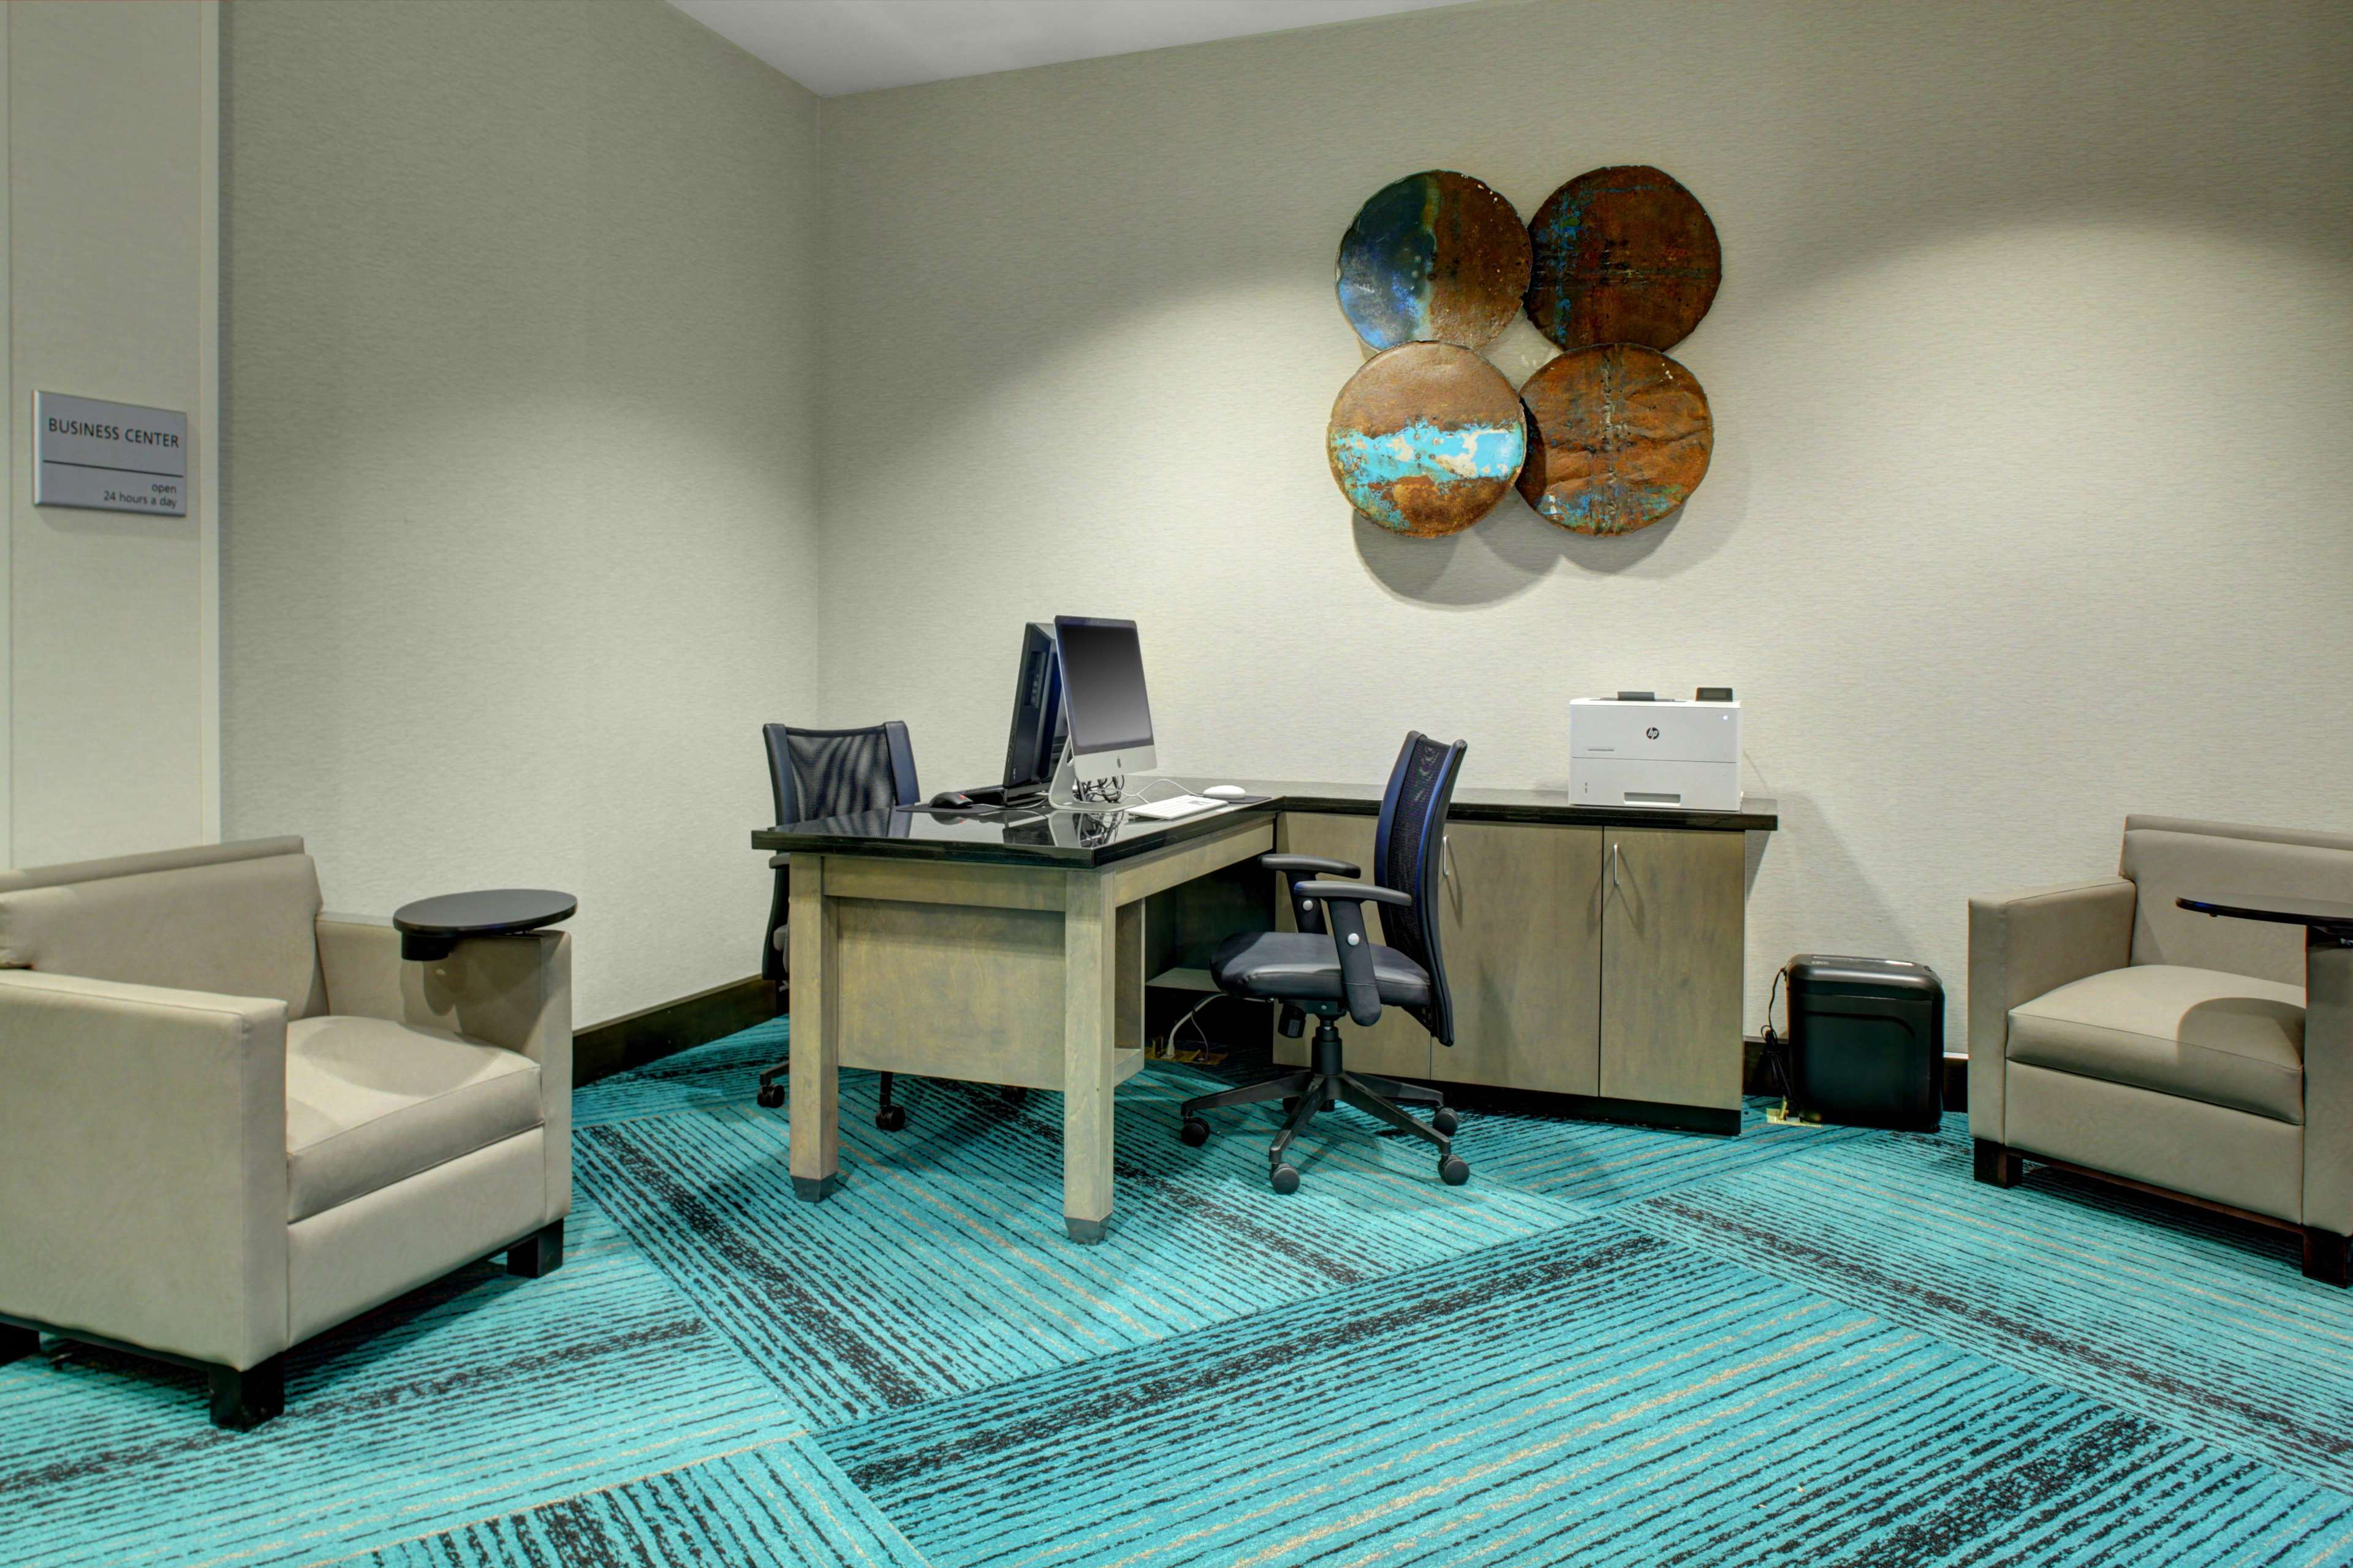 Hampton Inn & Suites Roanoke Downtown image 32